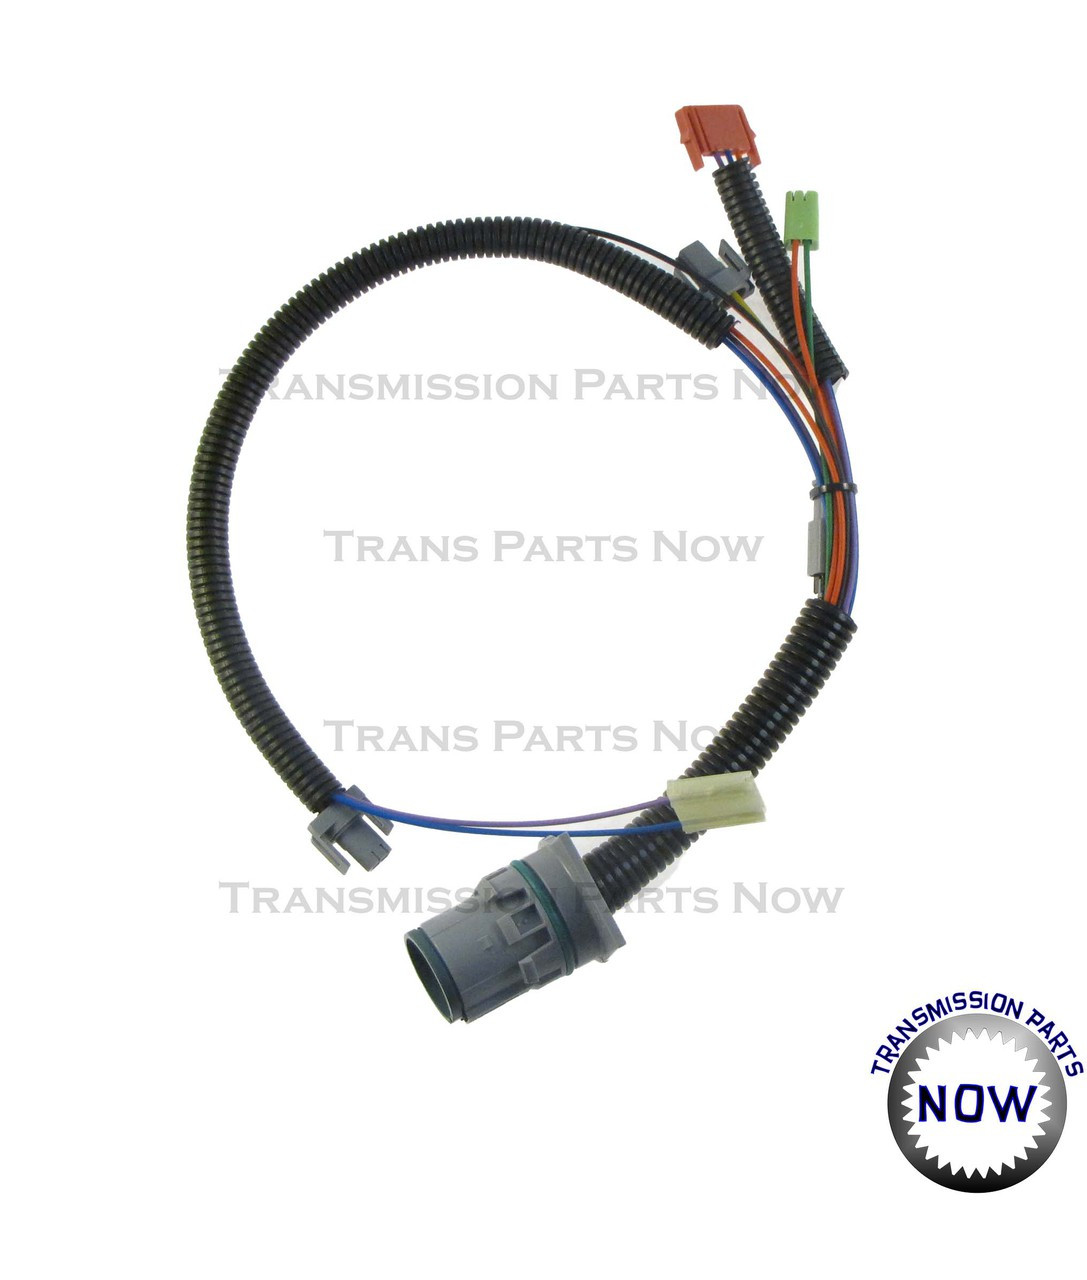 small resolution of internal wiring harness 1991 2003 34446 free shipping to the us c5 wire harness 4r100 internal wire harness